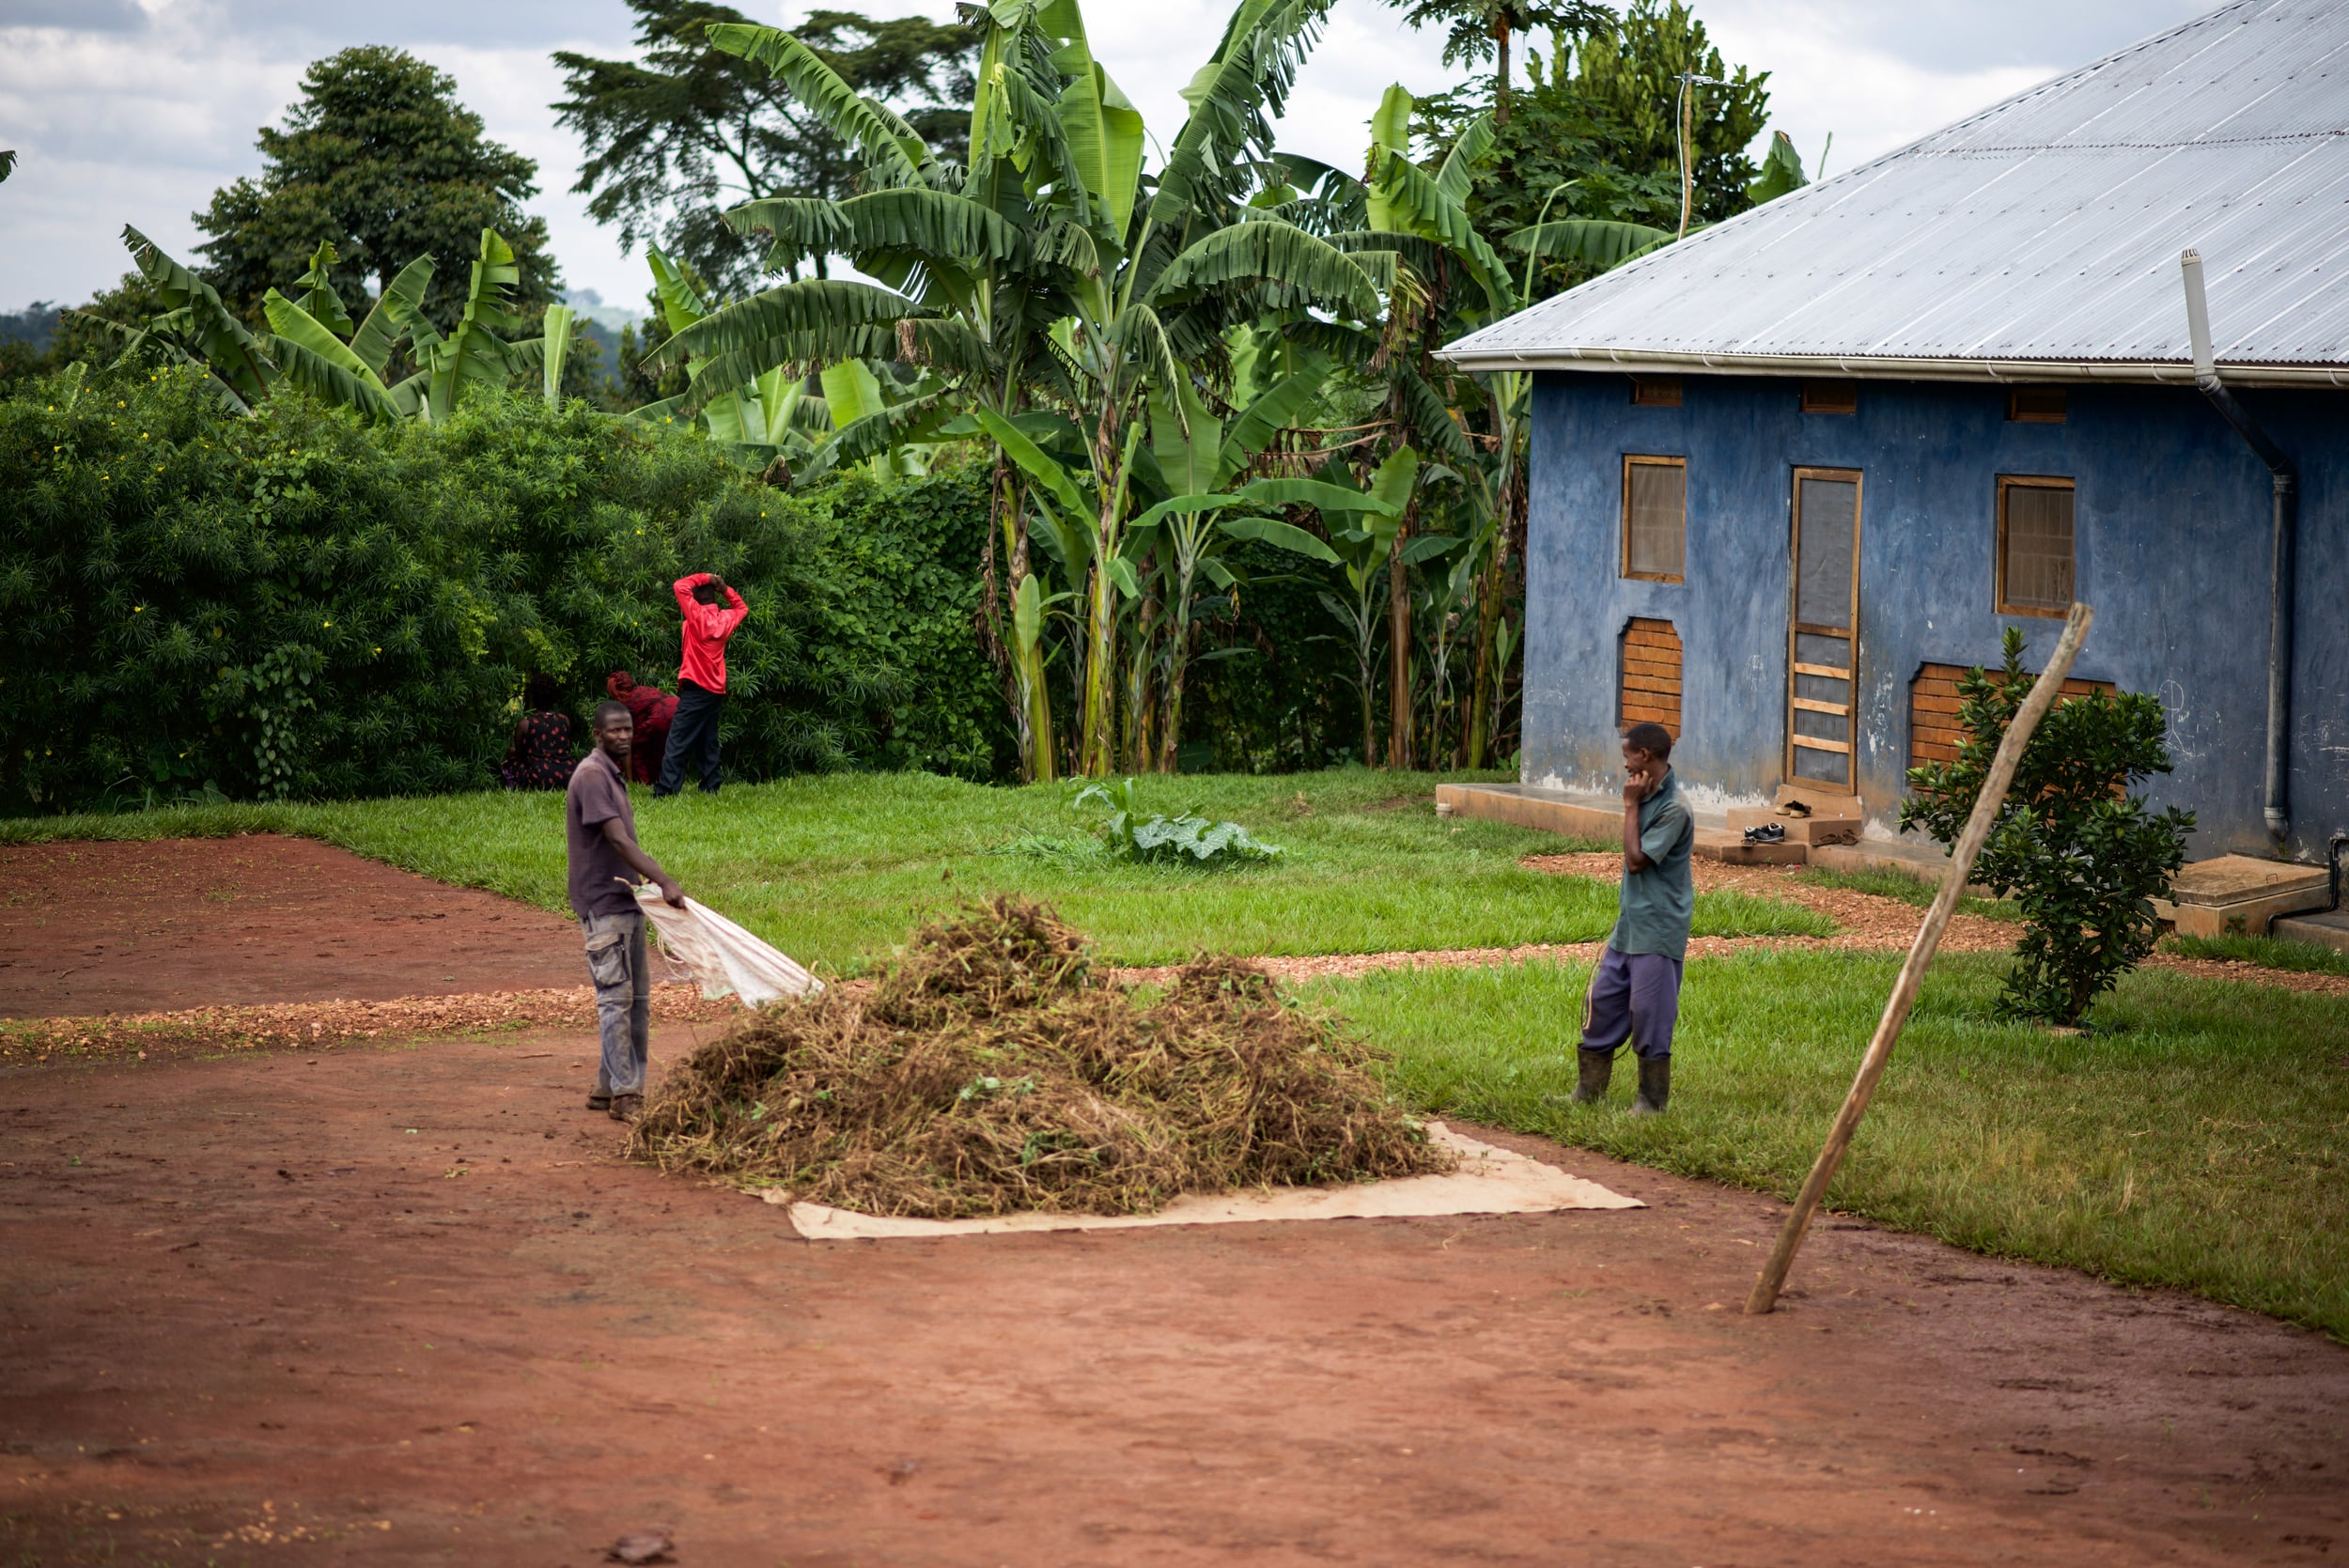 Students from the Institute for G.O.D. EA gather the grass clippings they combined after cutting with a scythe. They will use this for compost to encourage more growing.